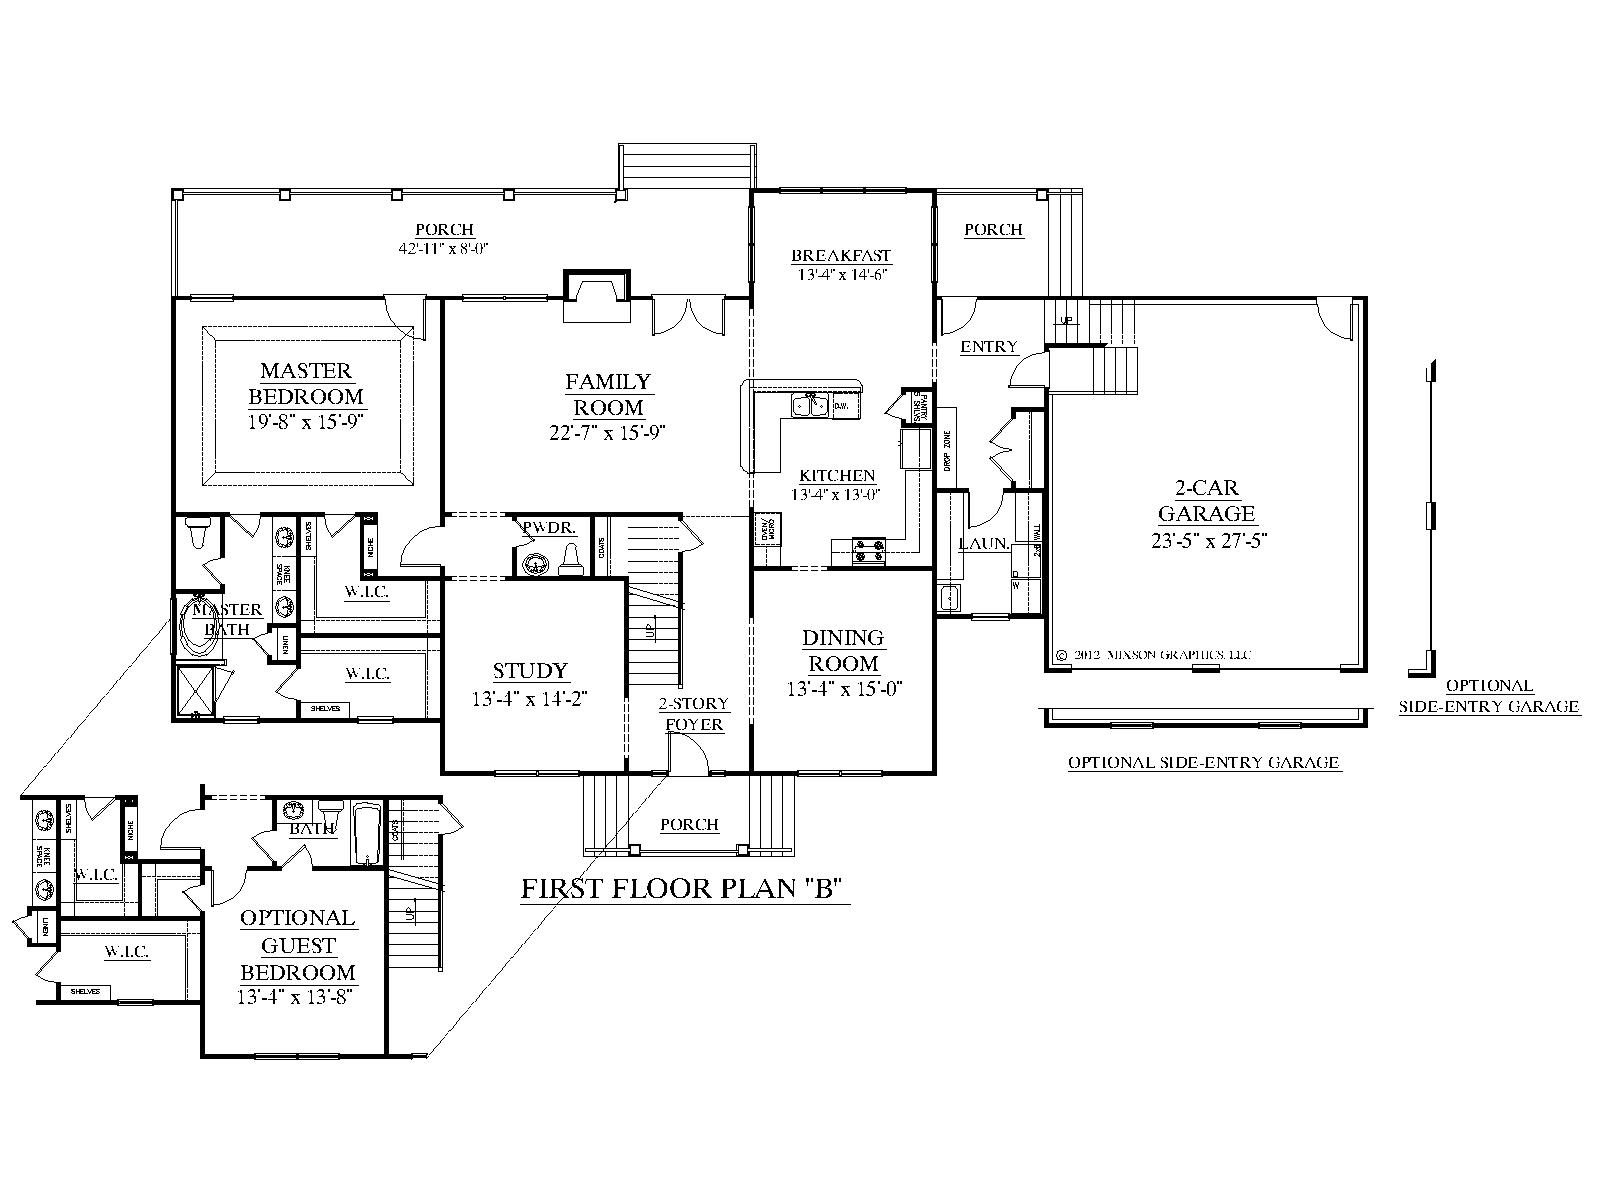 Inspirational Houseplans.biz | House Plan 3397-B The Albany B in Unique Small 5 Bedroom House Plans